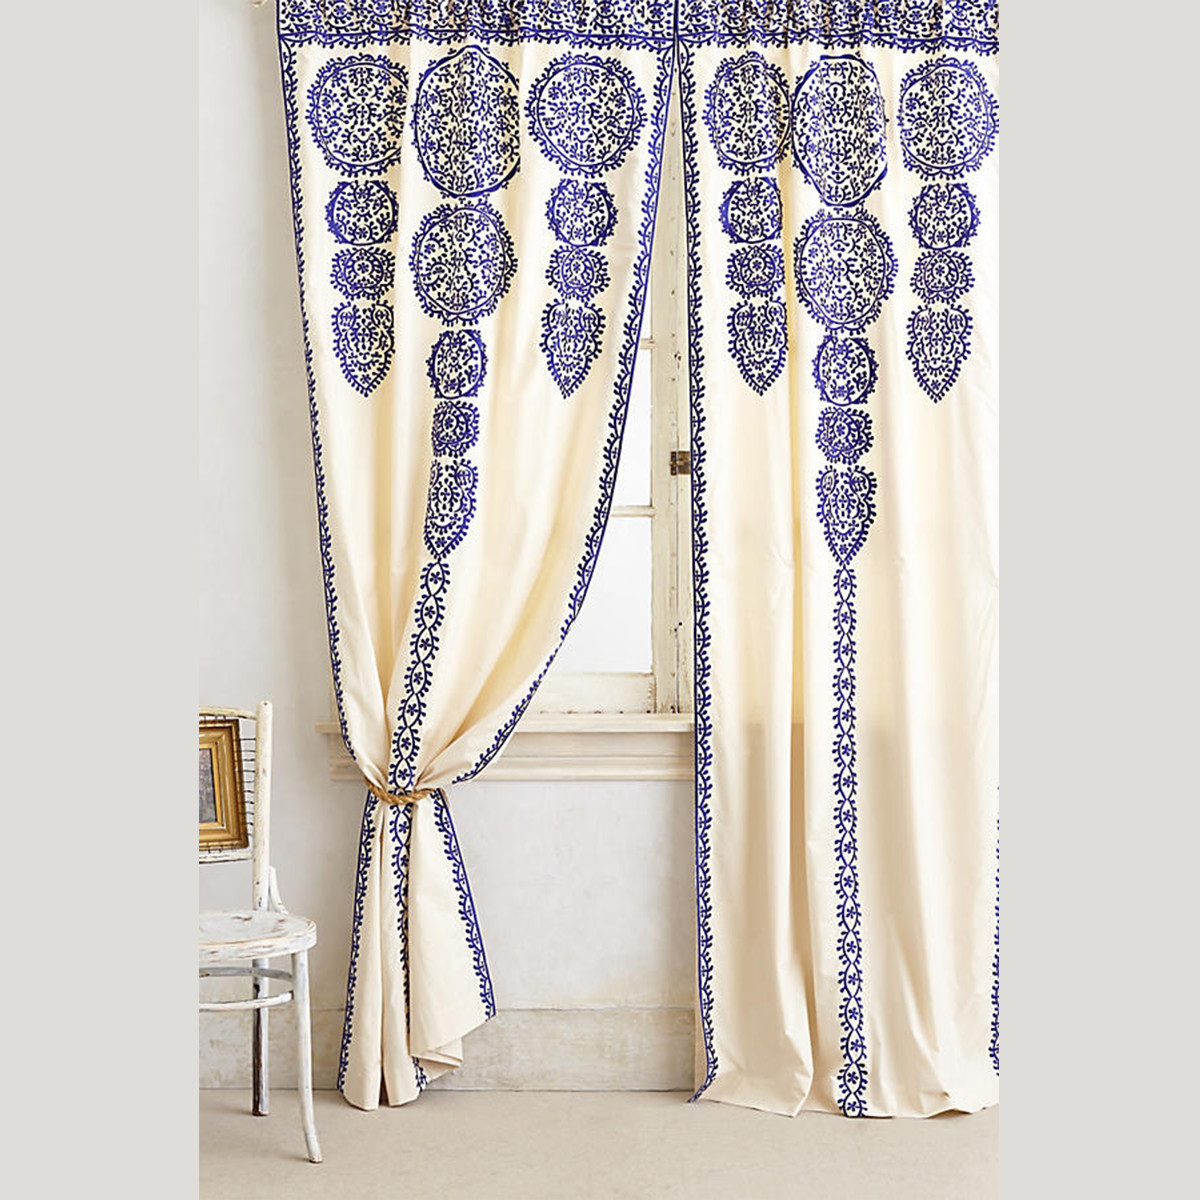 Anthropologie drapes with blue embroidery and smooth cotton lining. photo